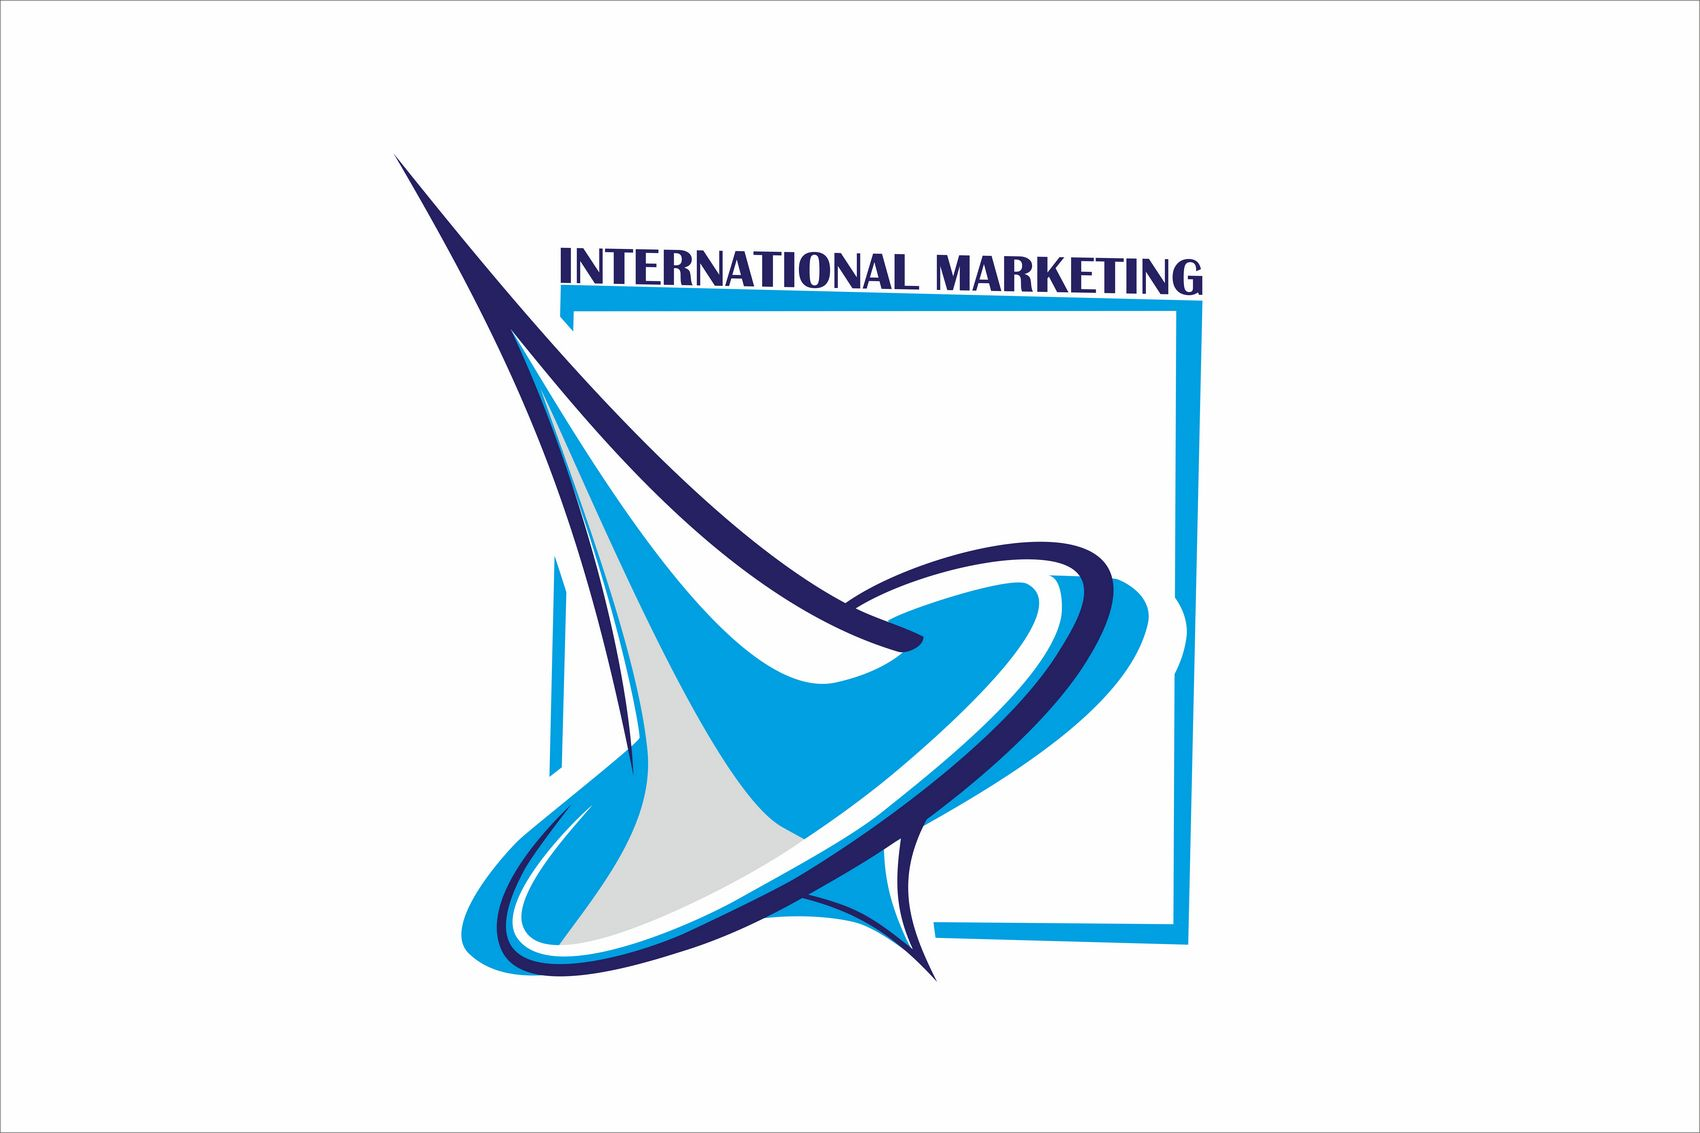 Inernational Marketing